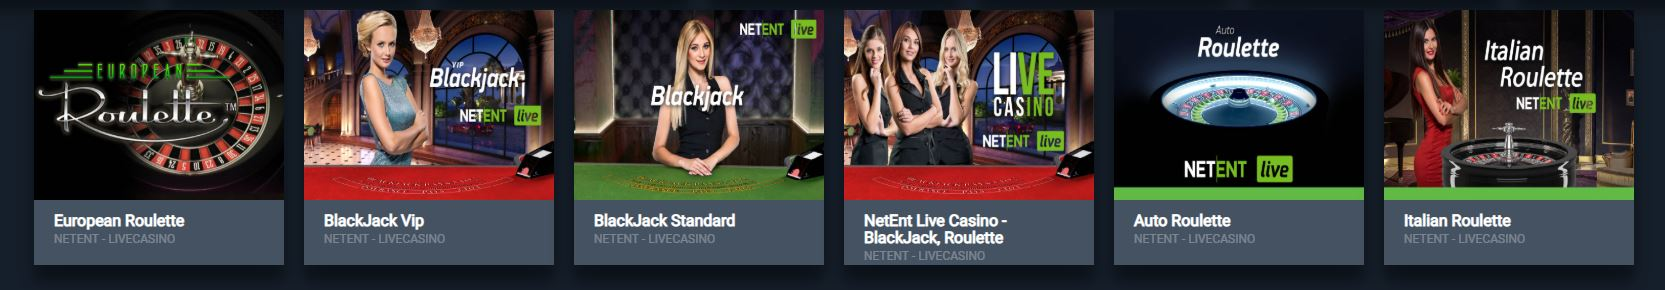 Winnermillion live casino